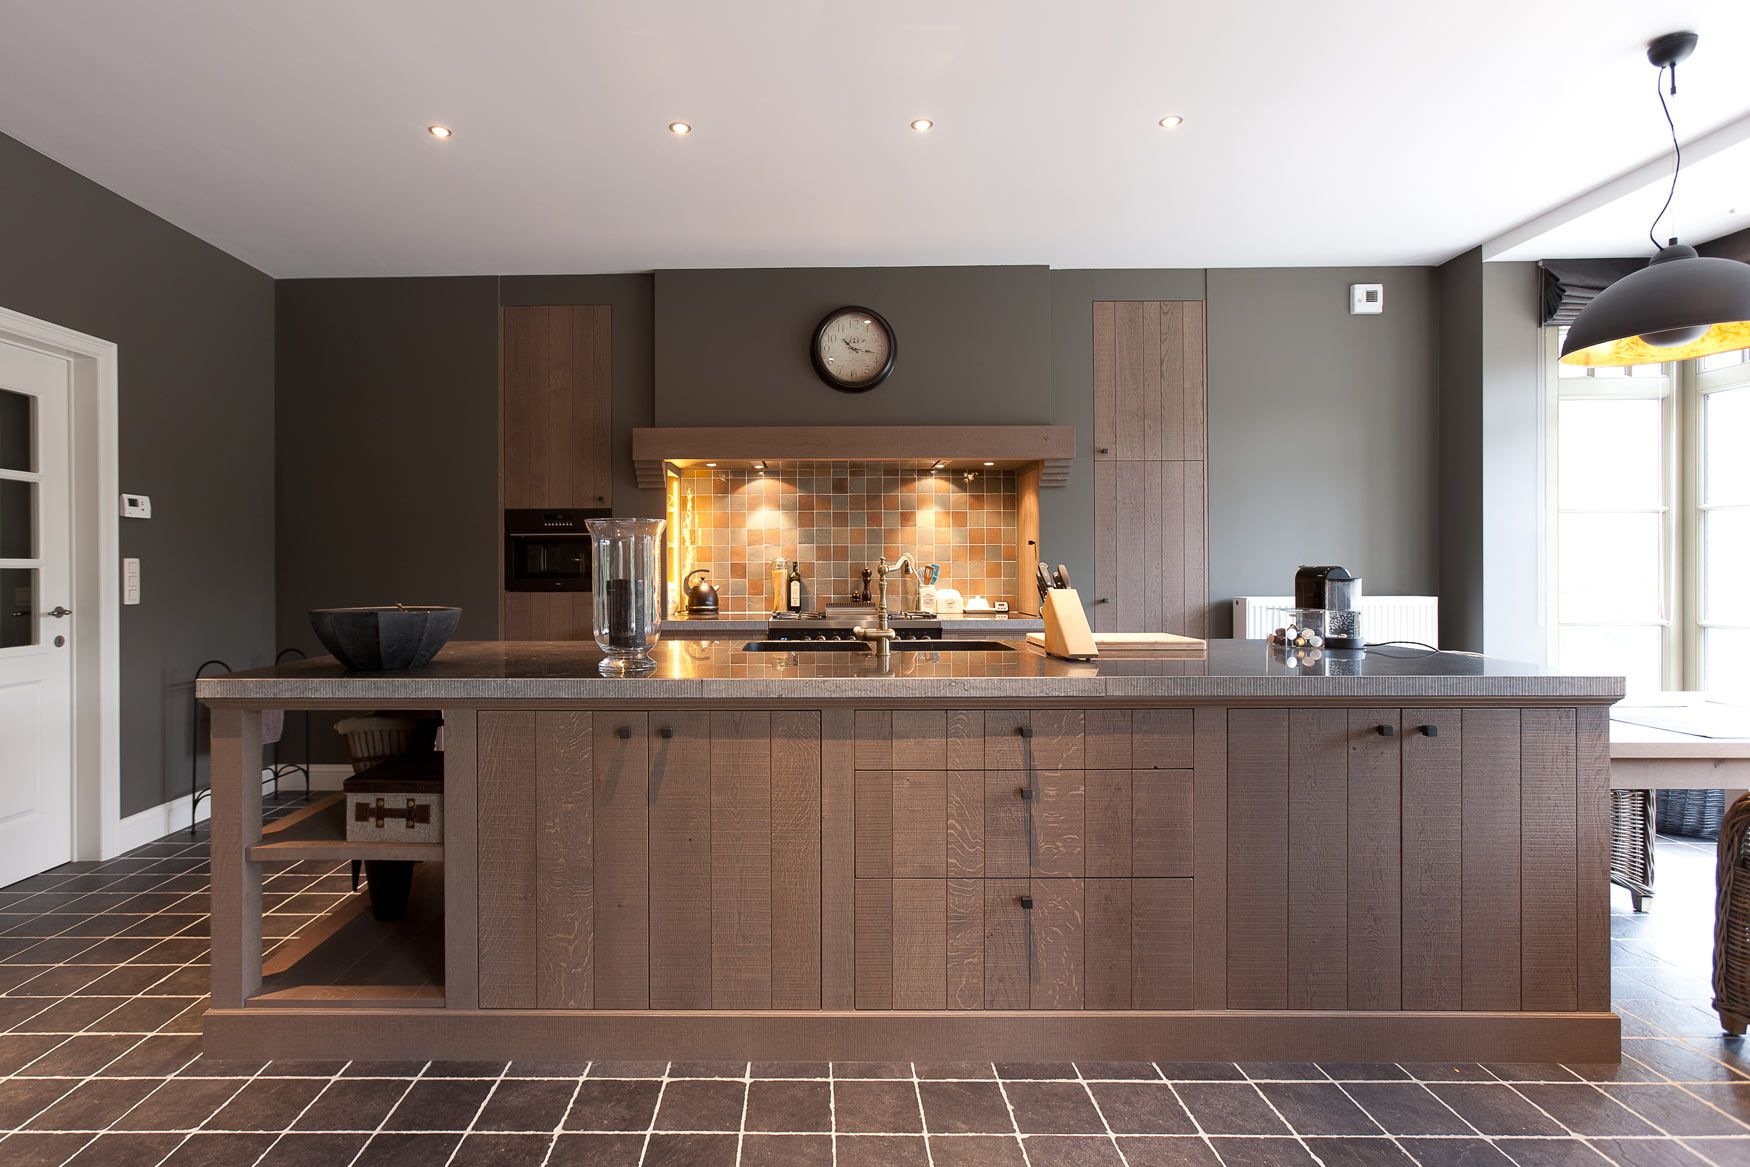 Keuken Fineer Verven : Keuken Fineer Eik : Keuken on Pinterest Belgian Style, Rustic Kitchens